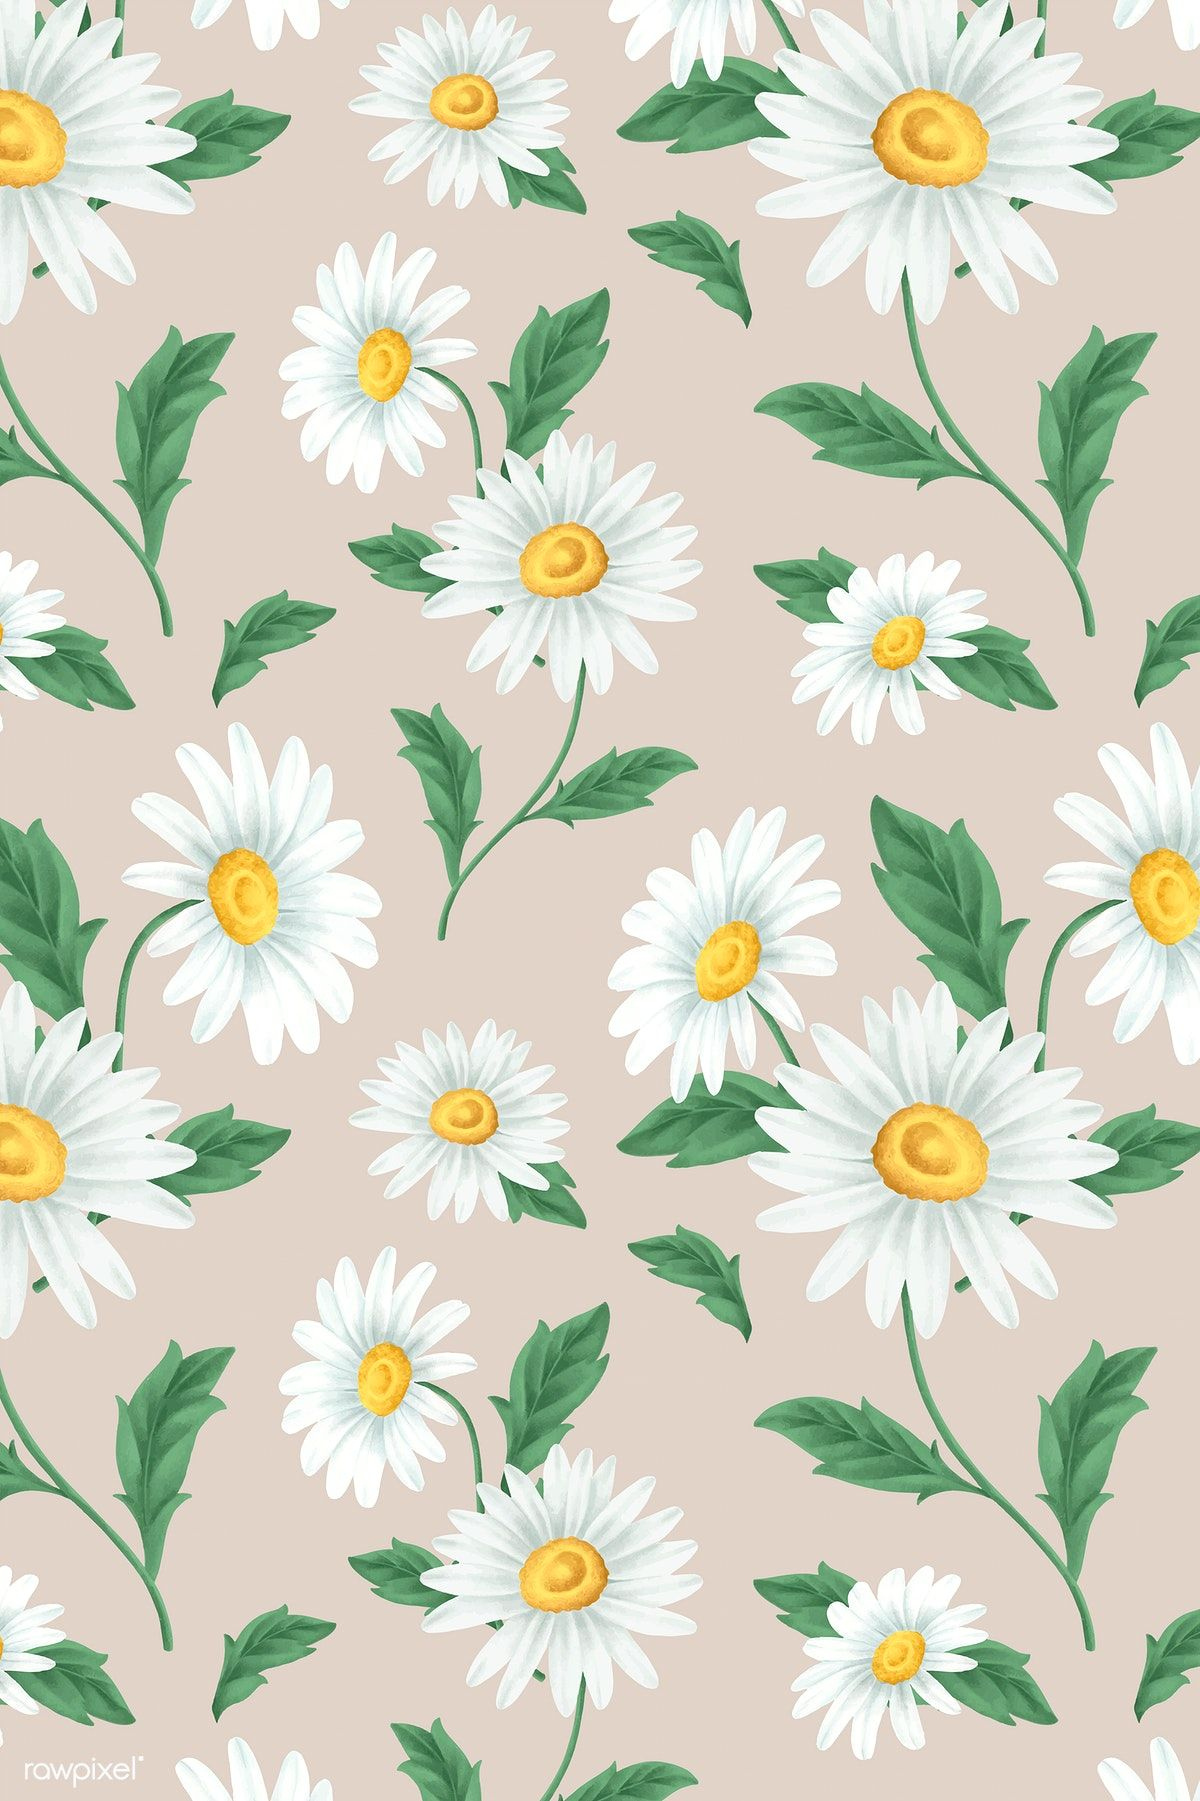 Download premium vector of White daisy flower seamless